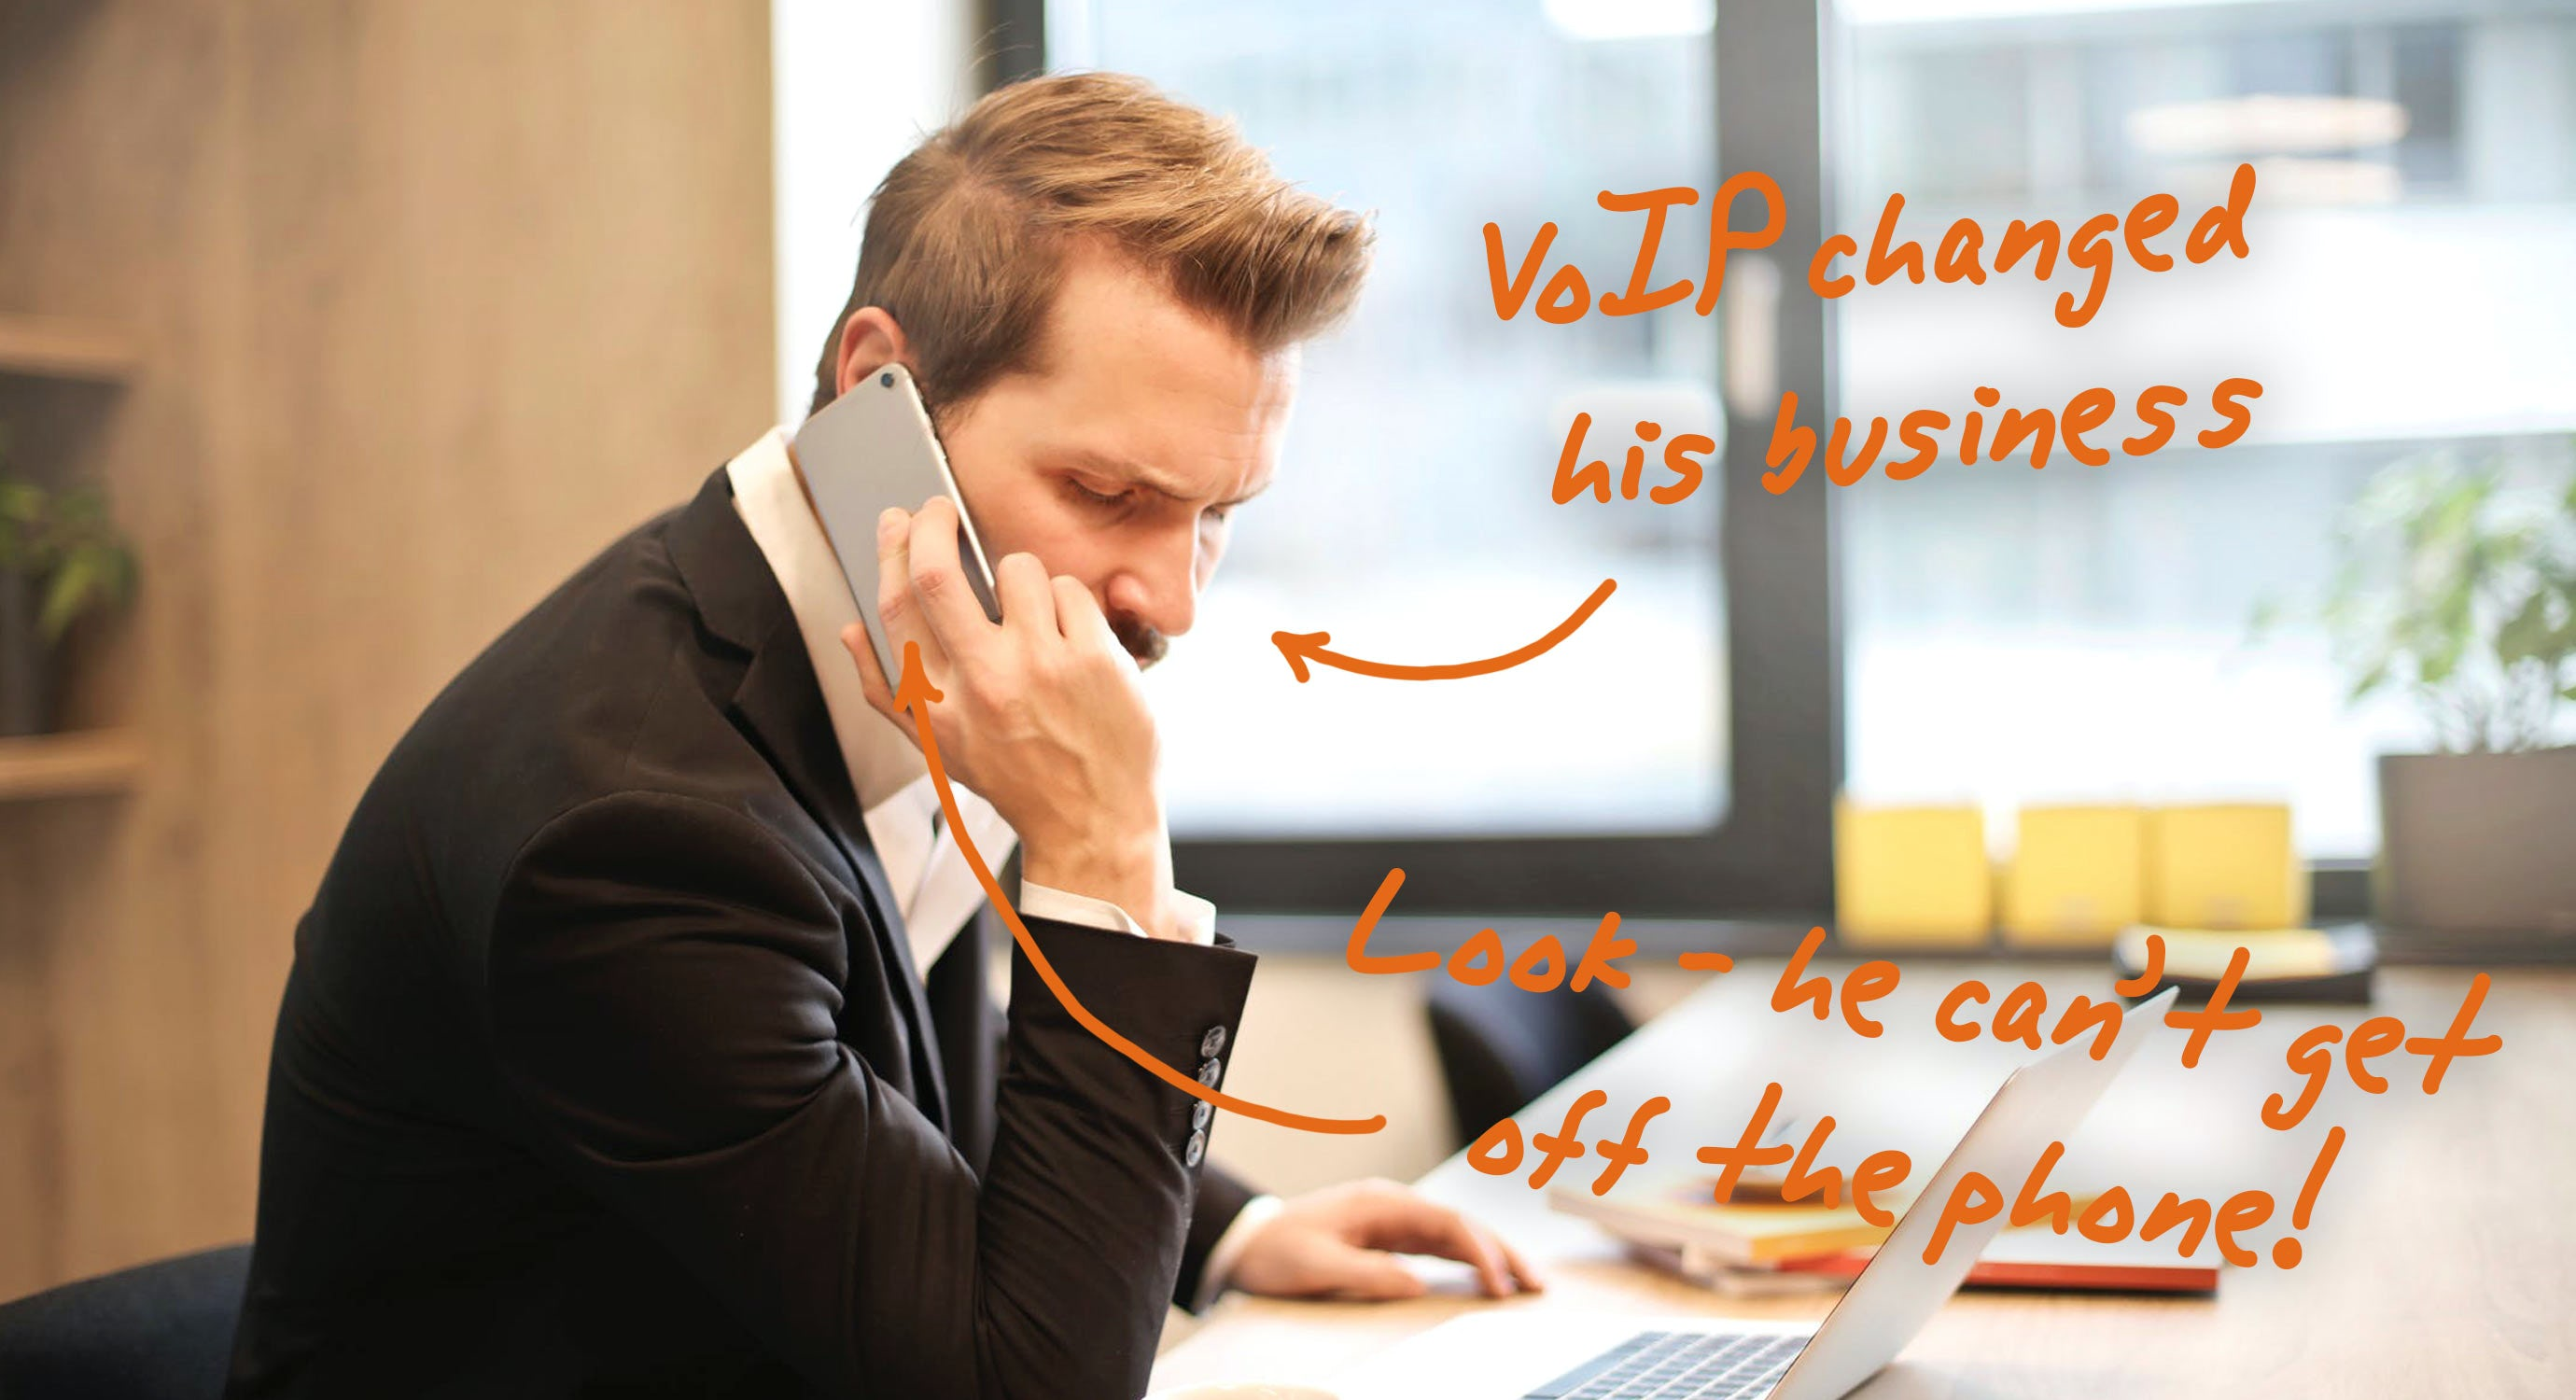 Image of people using VoIP phones